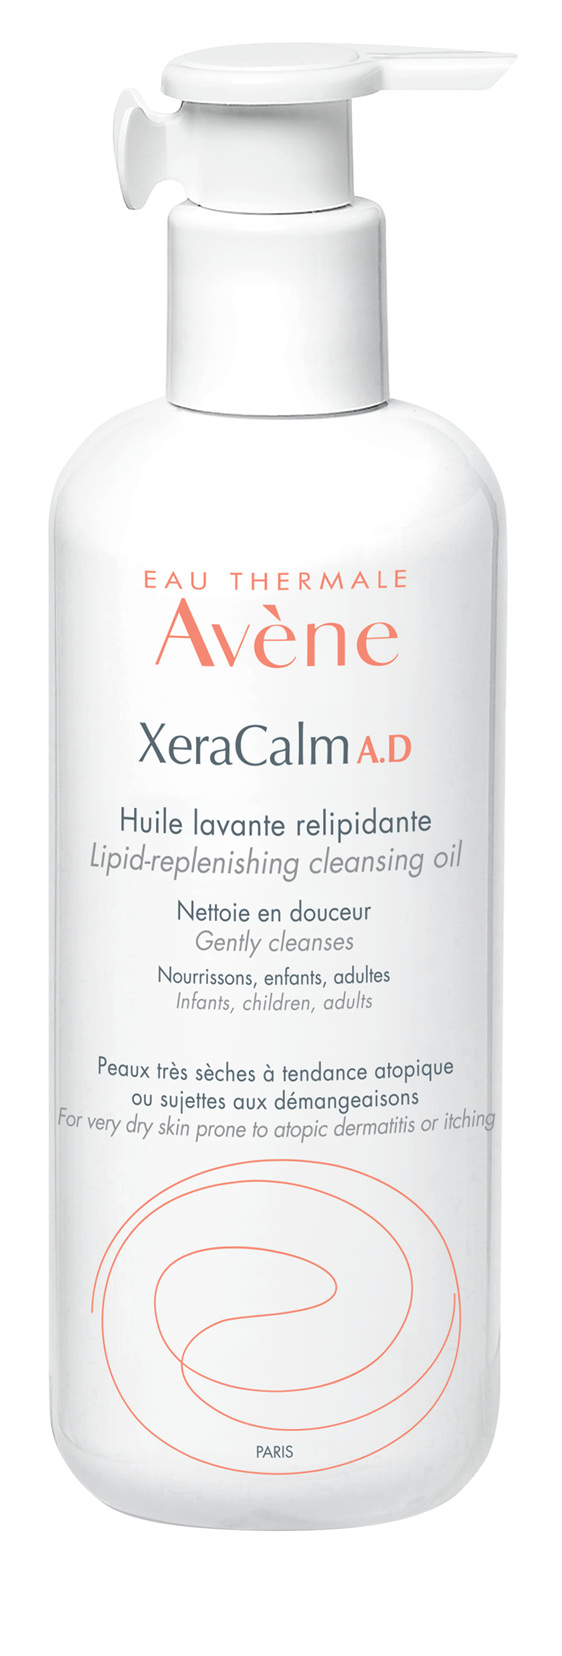 AVENE Xeracalm A.D. Oil 400ml